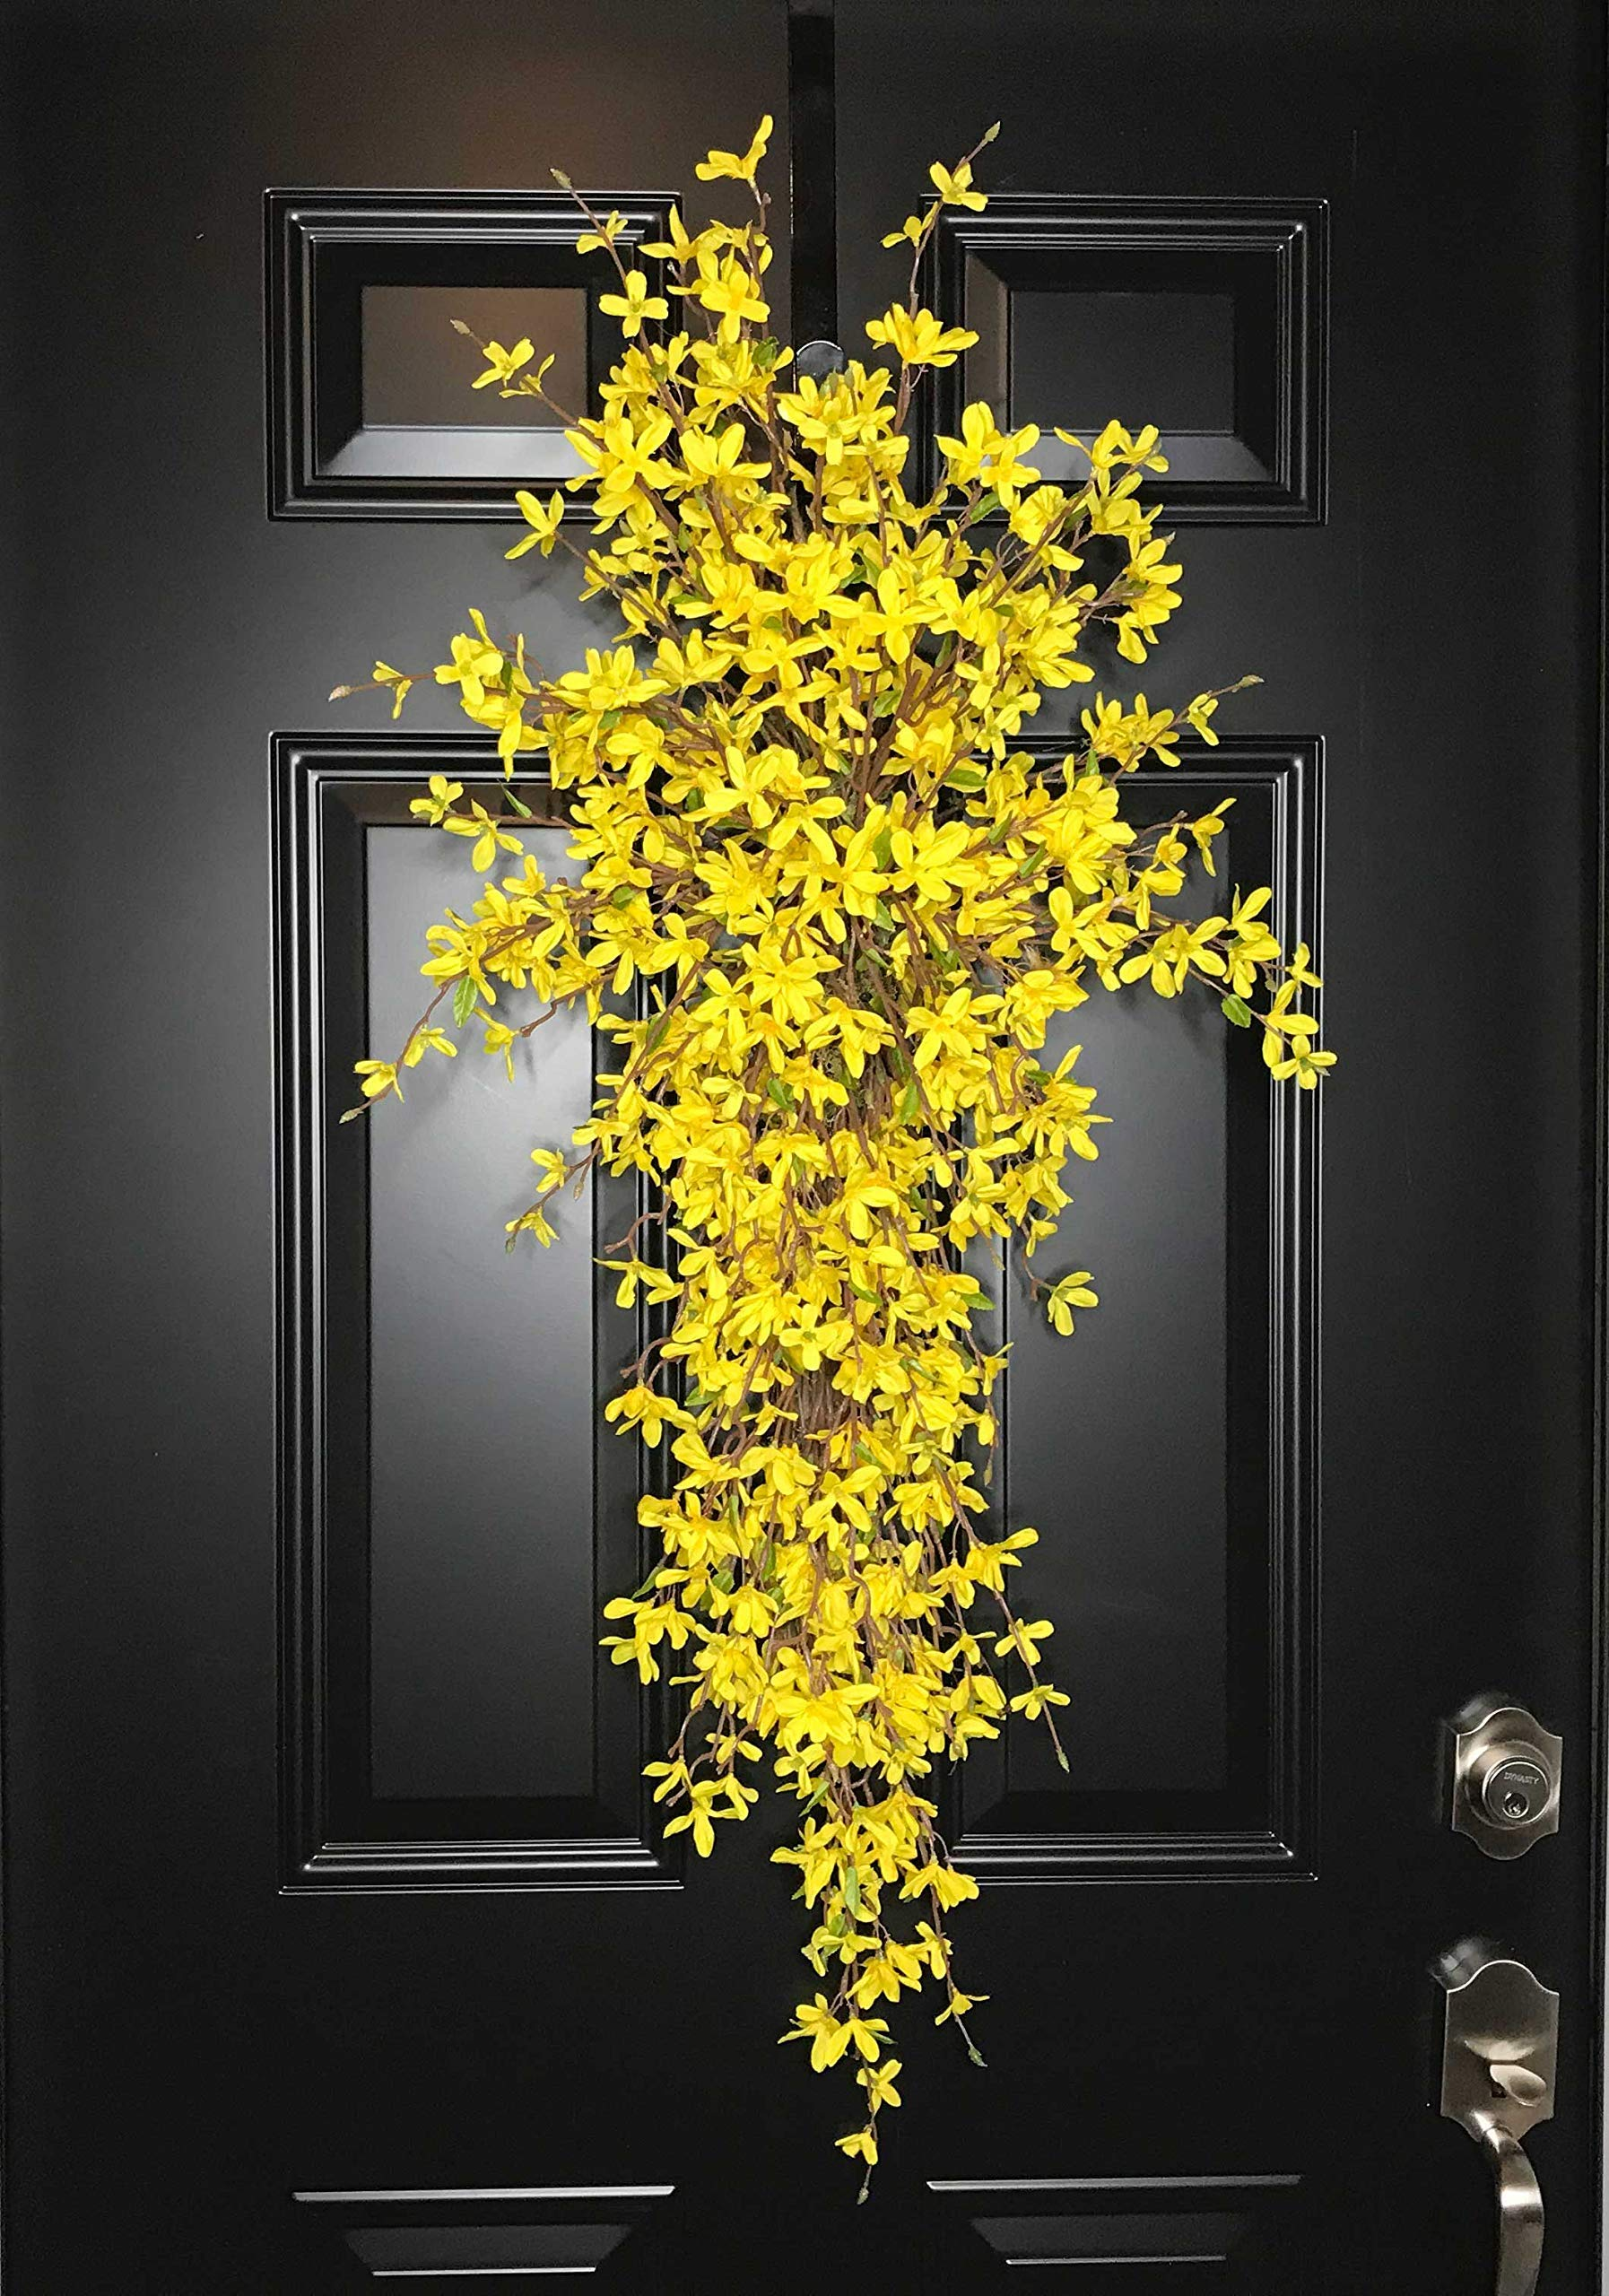 Extra Large Forsythia Floral Teardrop Swag Wreath for Front Door Porch Indoor Wall Farmhouse Decor Spring Springtime Summer Summertime Mother's Day Easter, Handmade, Yellow, 3 Sizes-42'', 36'', 30'' L by Wreath and Vine, LLC (Image #7)